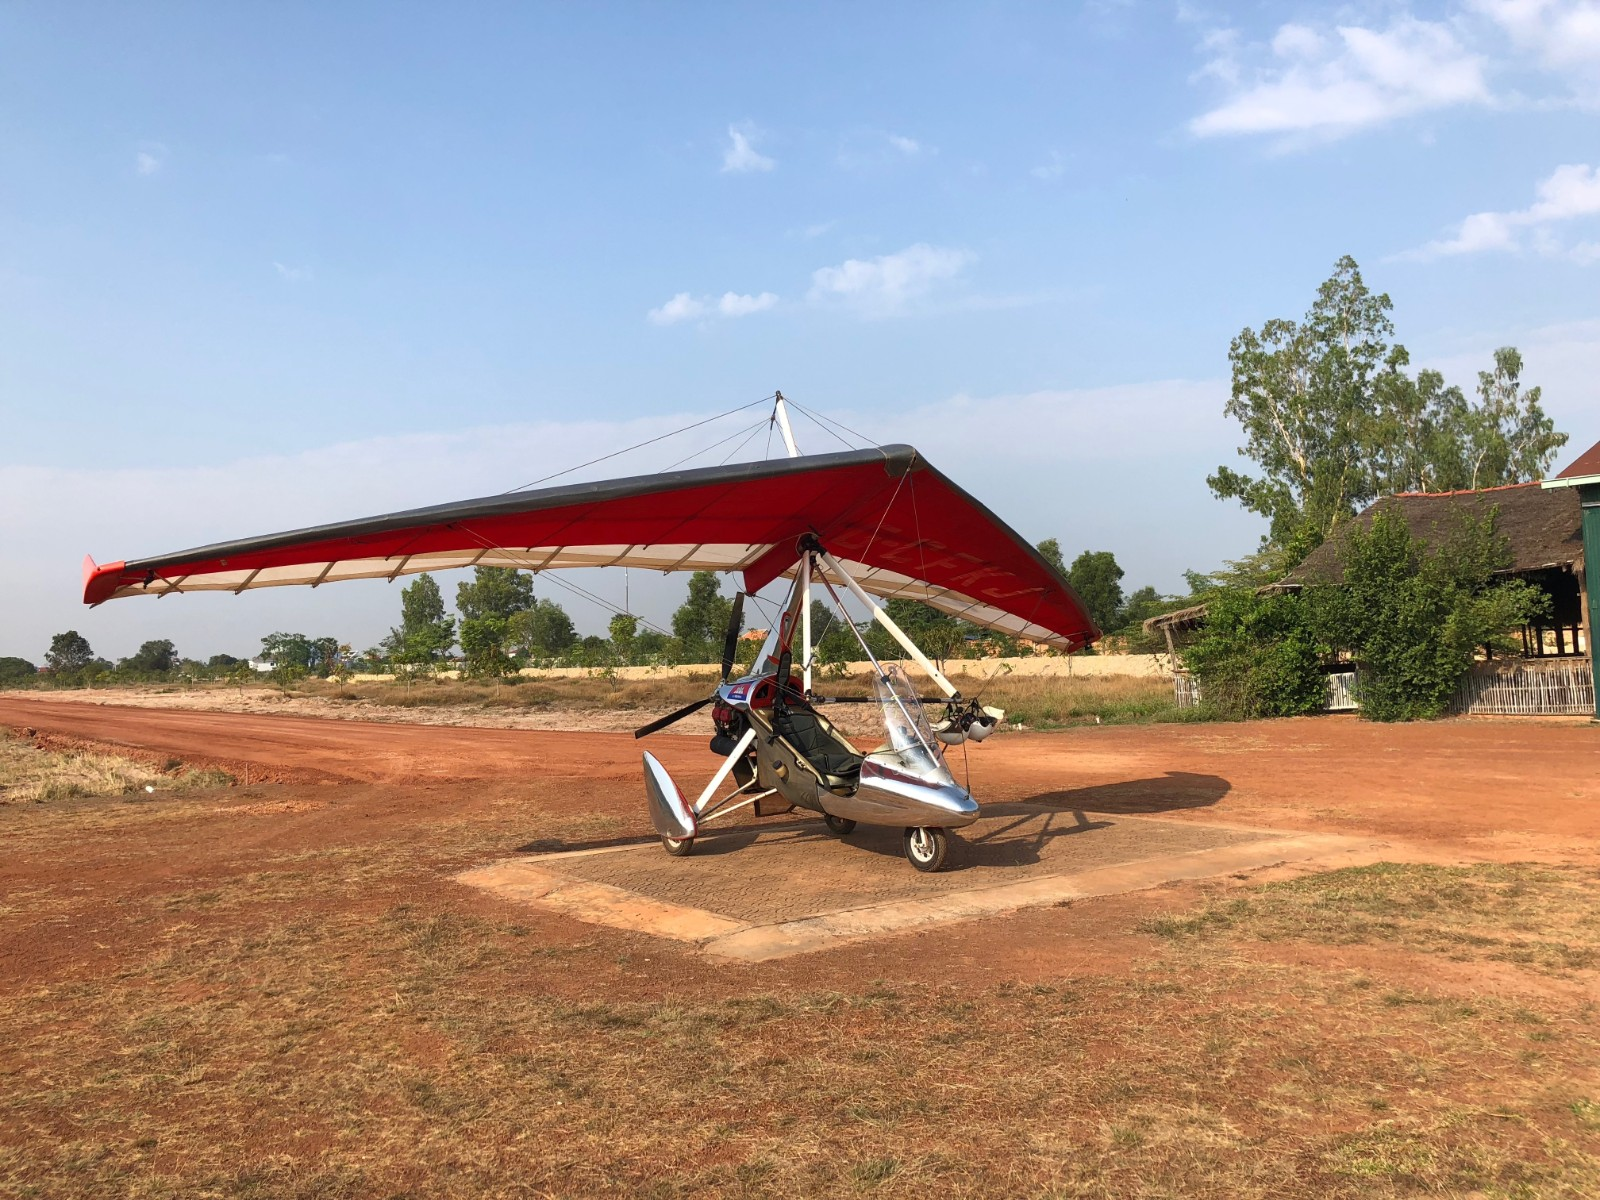 The Ultralight aircraft we took to fly over the Cambodian temples. boldlygotravel.com